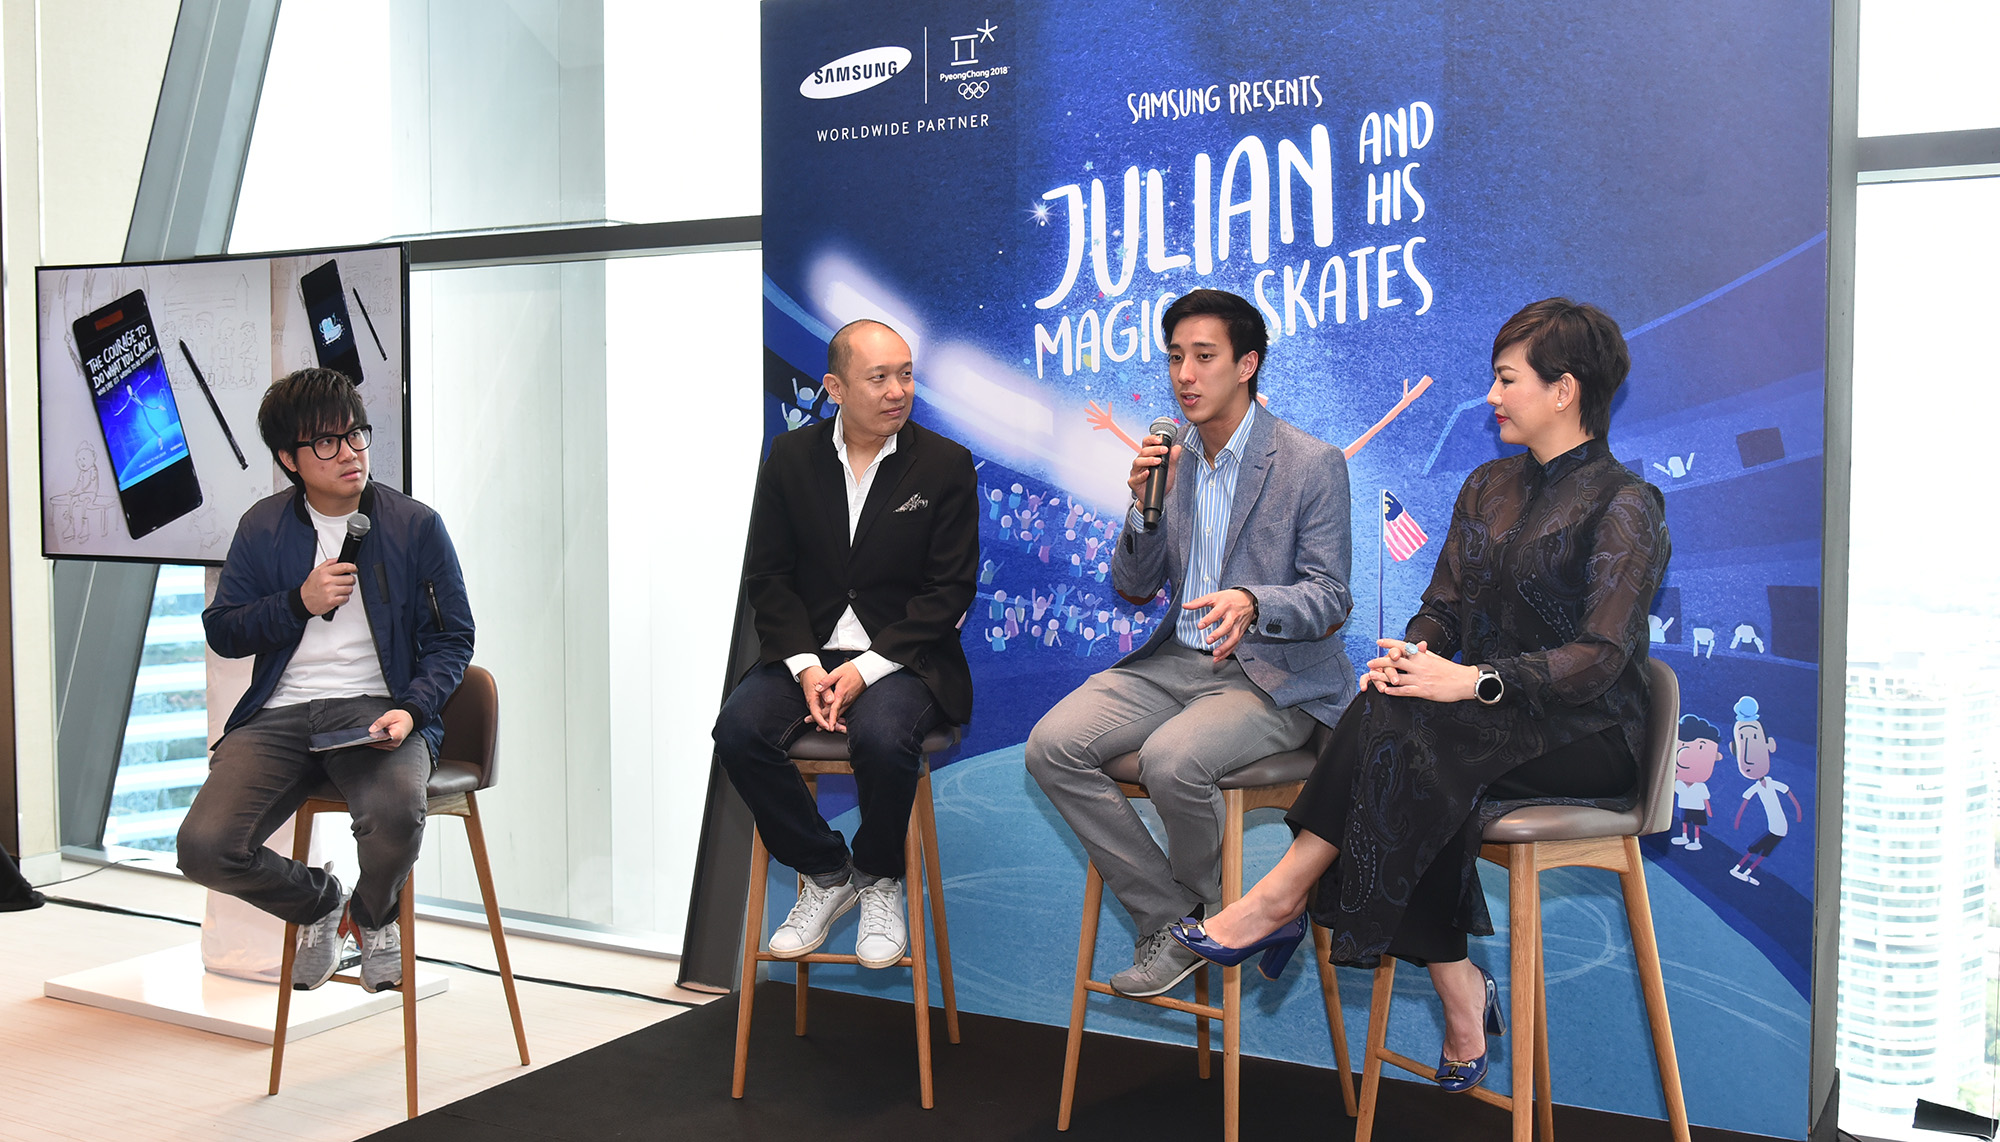 """Samsung Showcases Do What You Can't in Feature Film, """"Julian and His Magical Skates"""""""